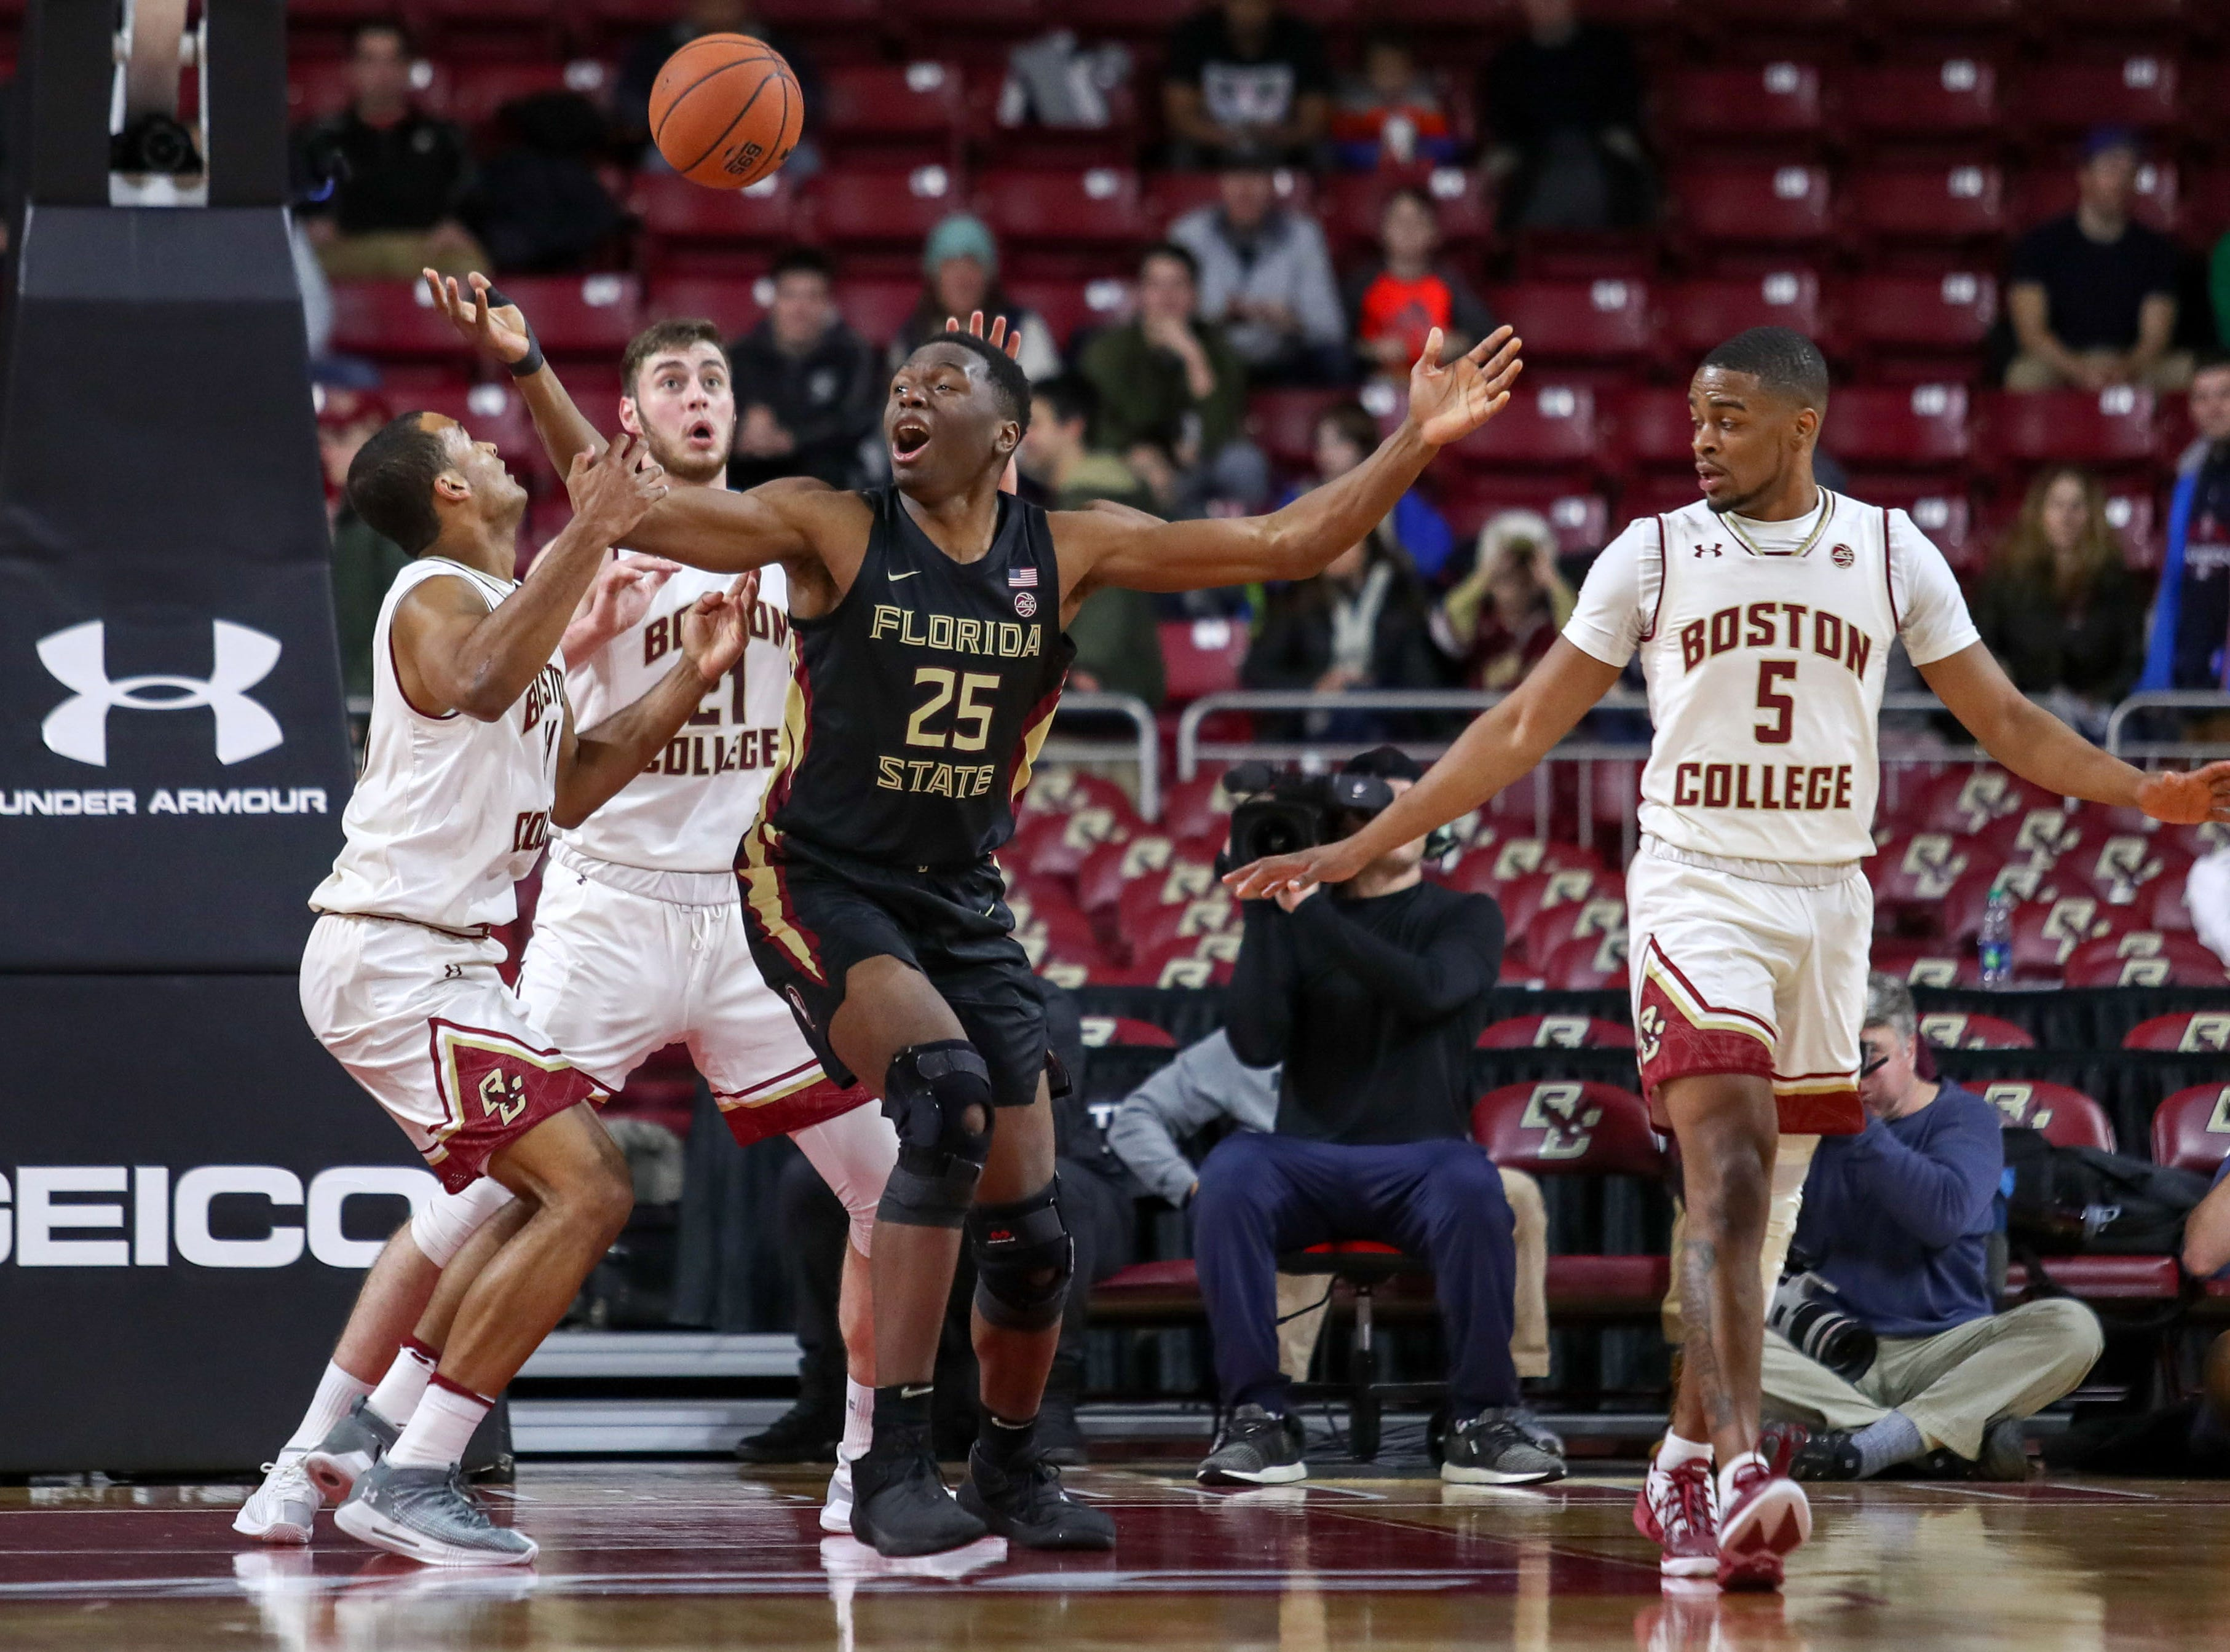 Jan 20, 2019; Chestnut Hill, MA, USA; Florida State Seminoles forward Mfiondu Kabengele (25) looses the ball against the Boston College Eagles during the first half at Conte Forum. Mandatory Credit: Paul Rutherford-USA TODAY Sports